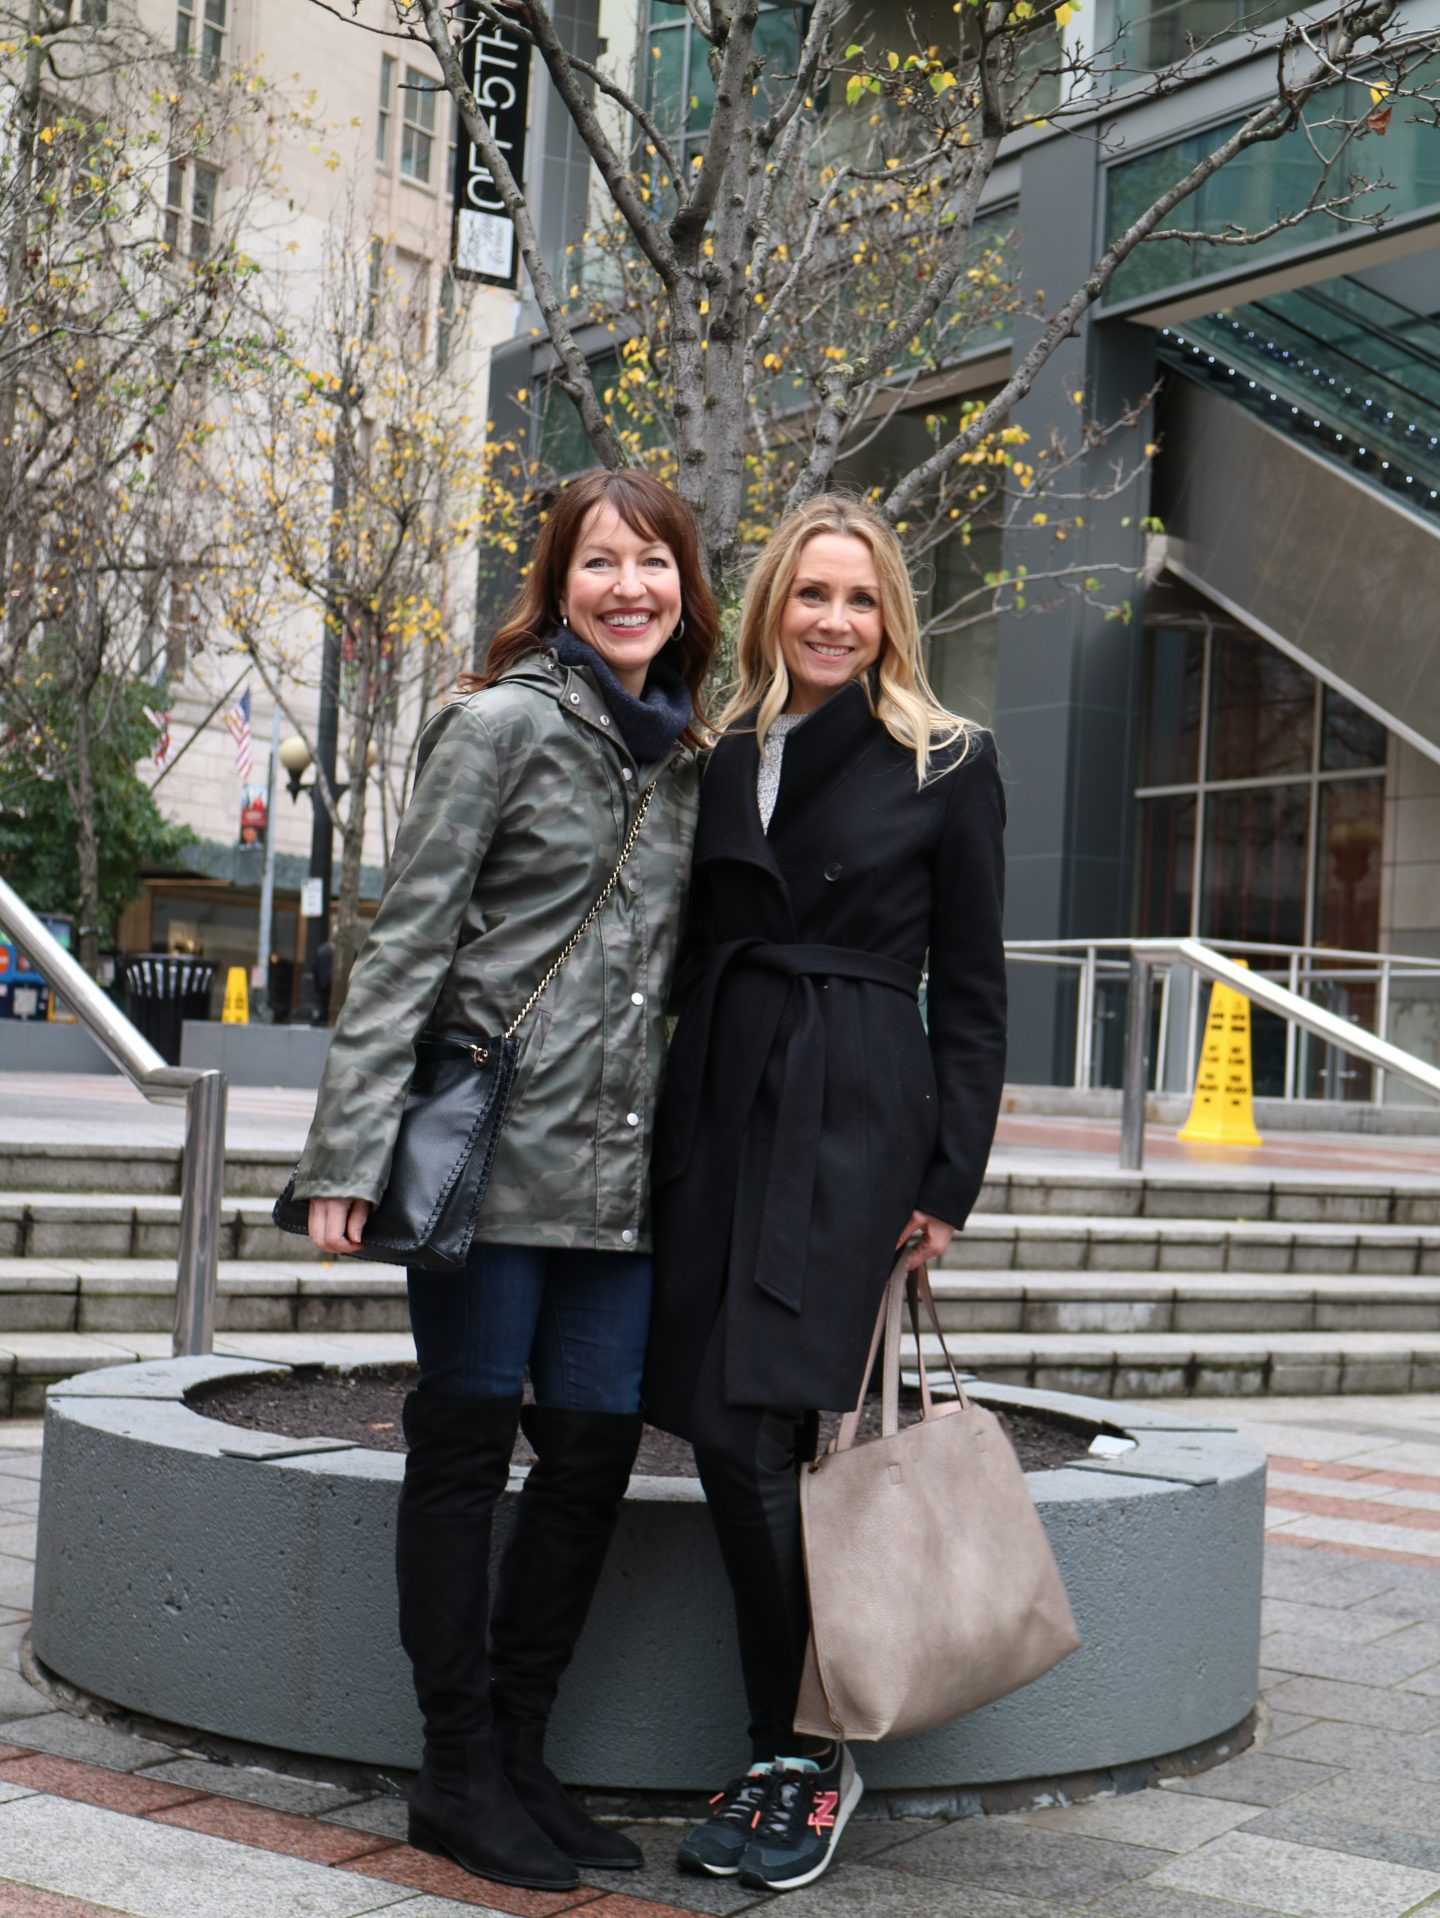 7 rules for shopping with a friend